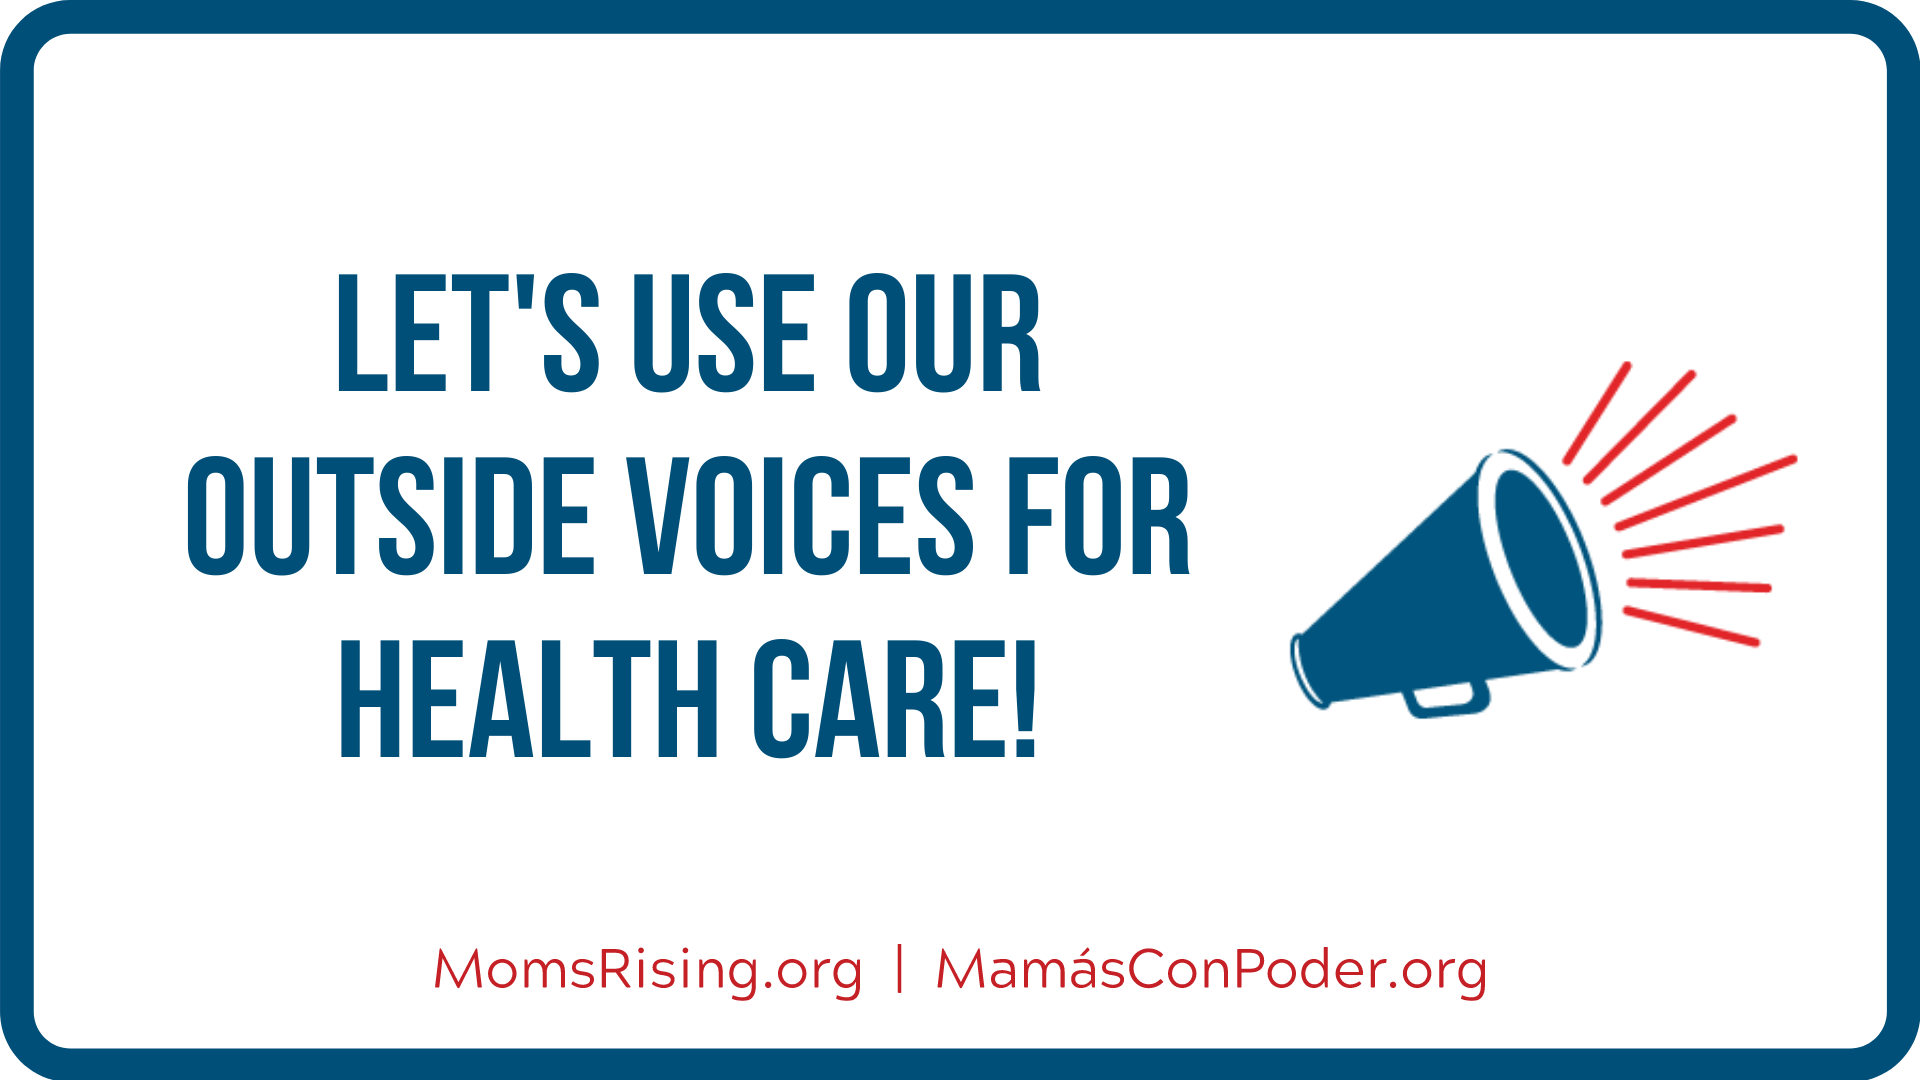 Let's use our outside voices for health care!